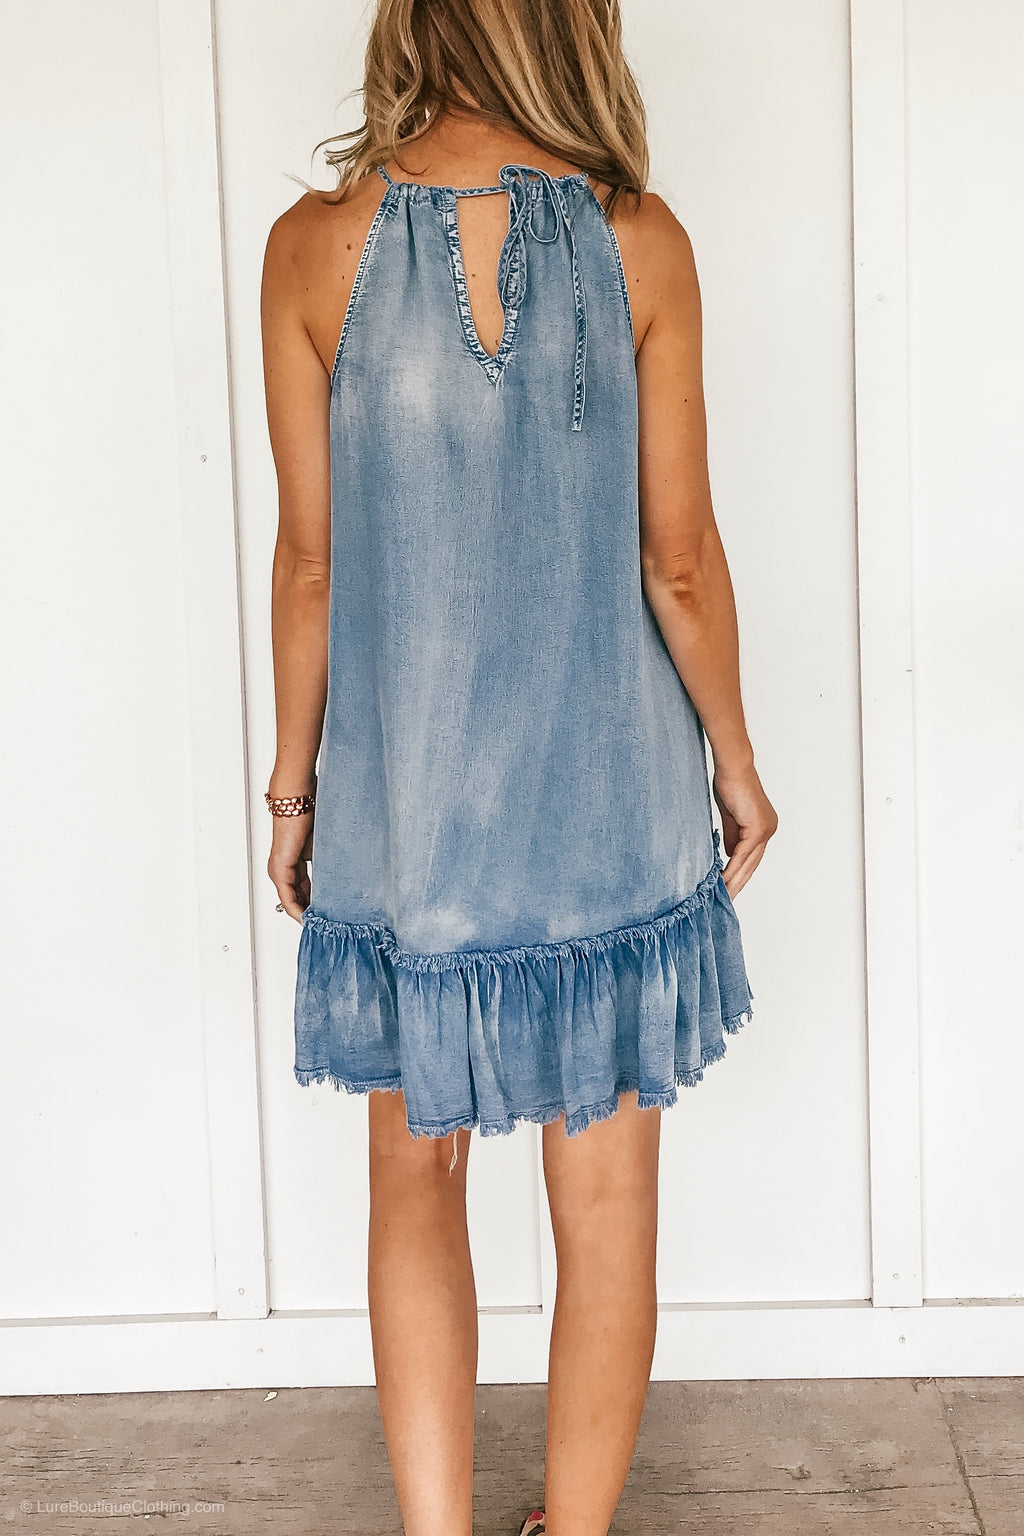 The Chambray Halter Dress